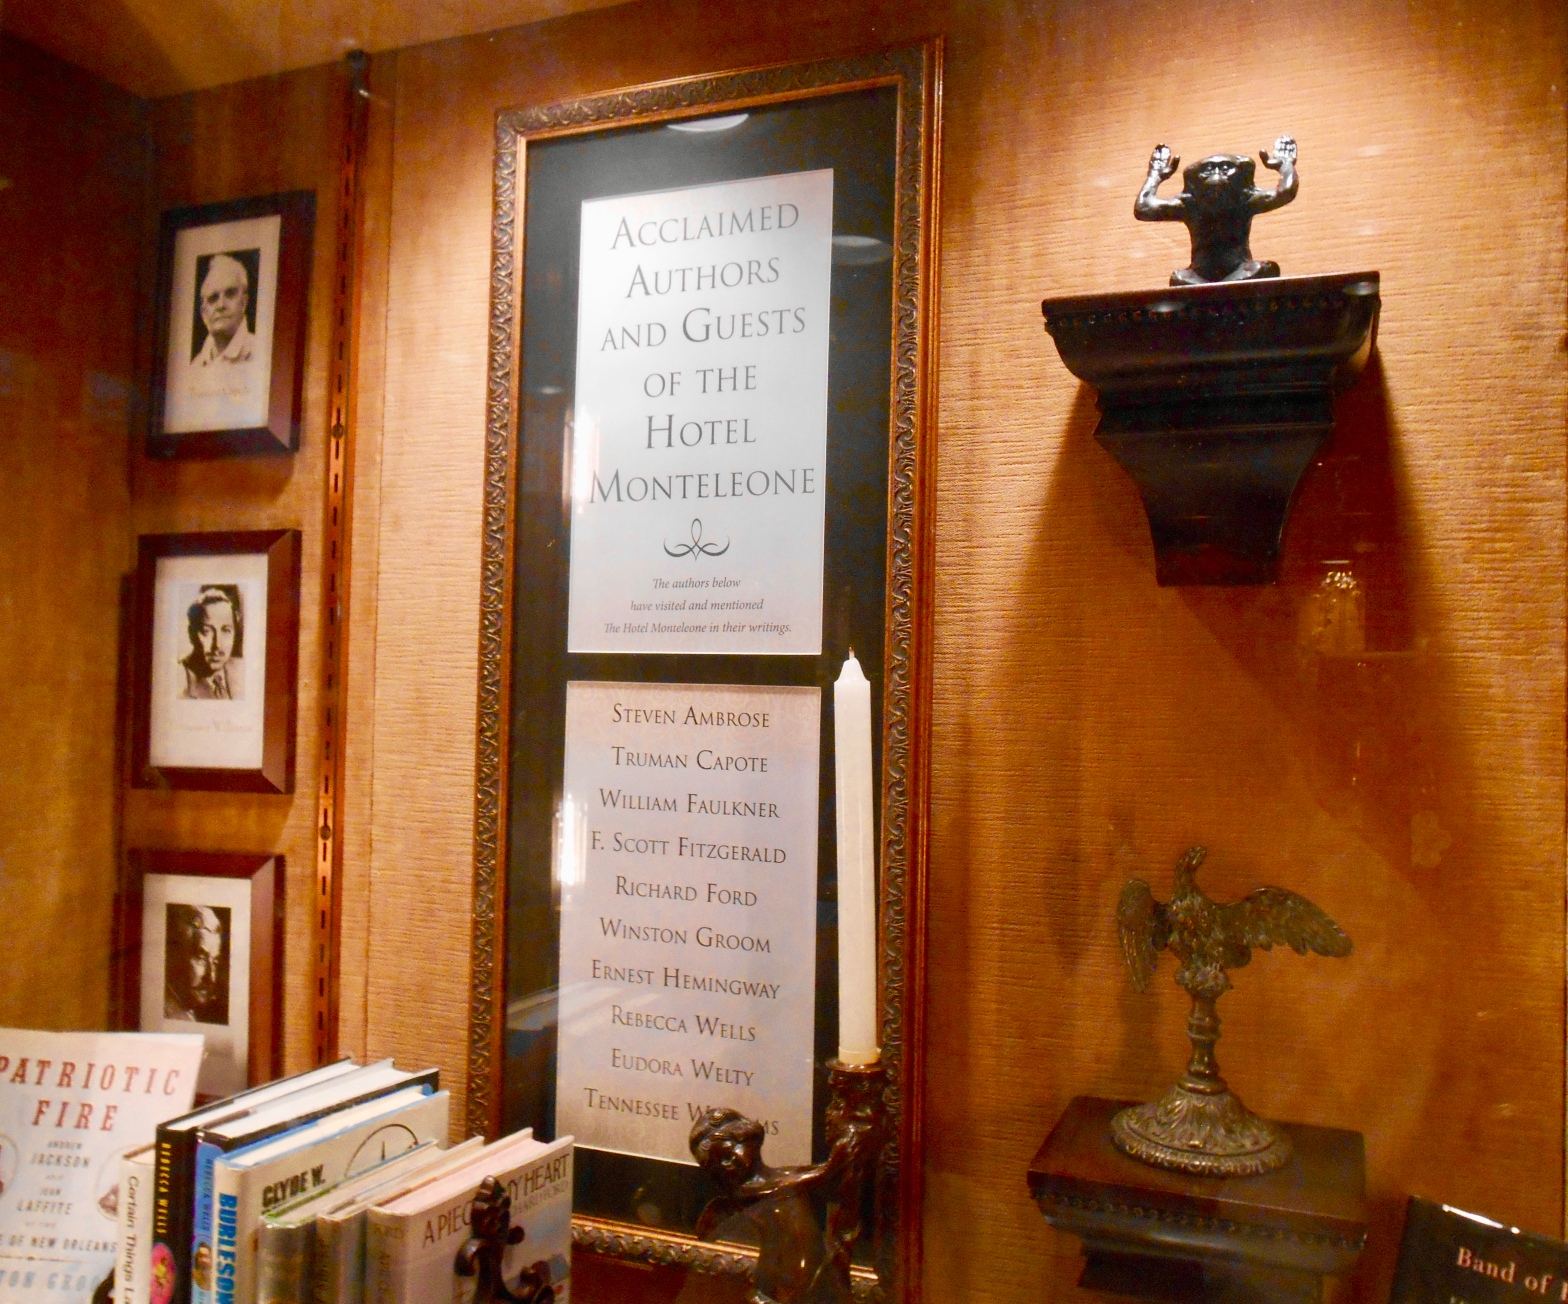 image of tribute to authors who stayed at Monteleone Hotel in New Orleans